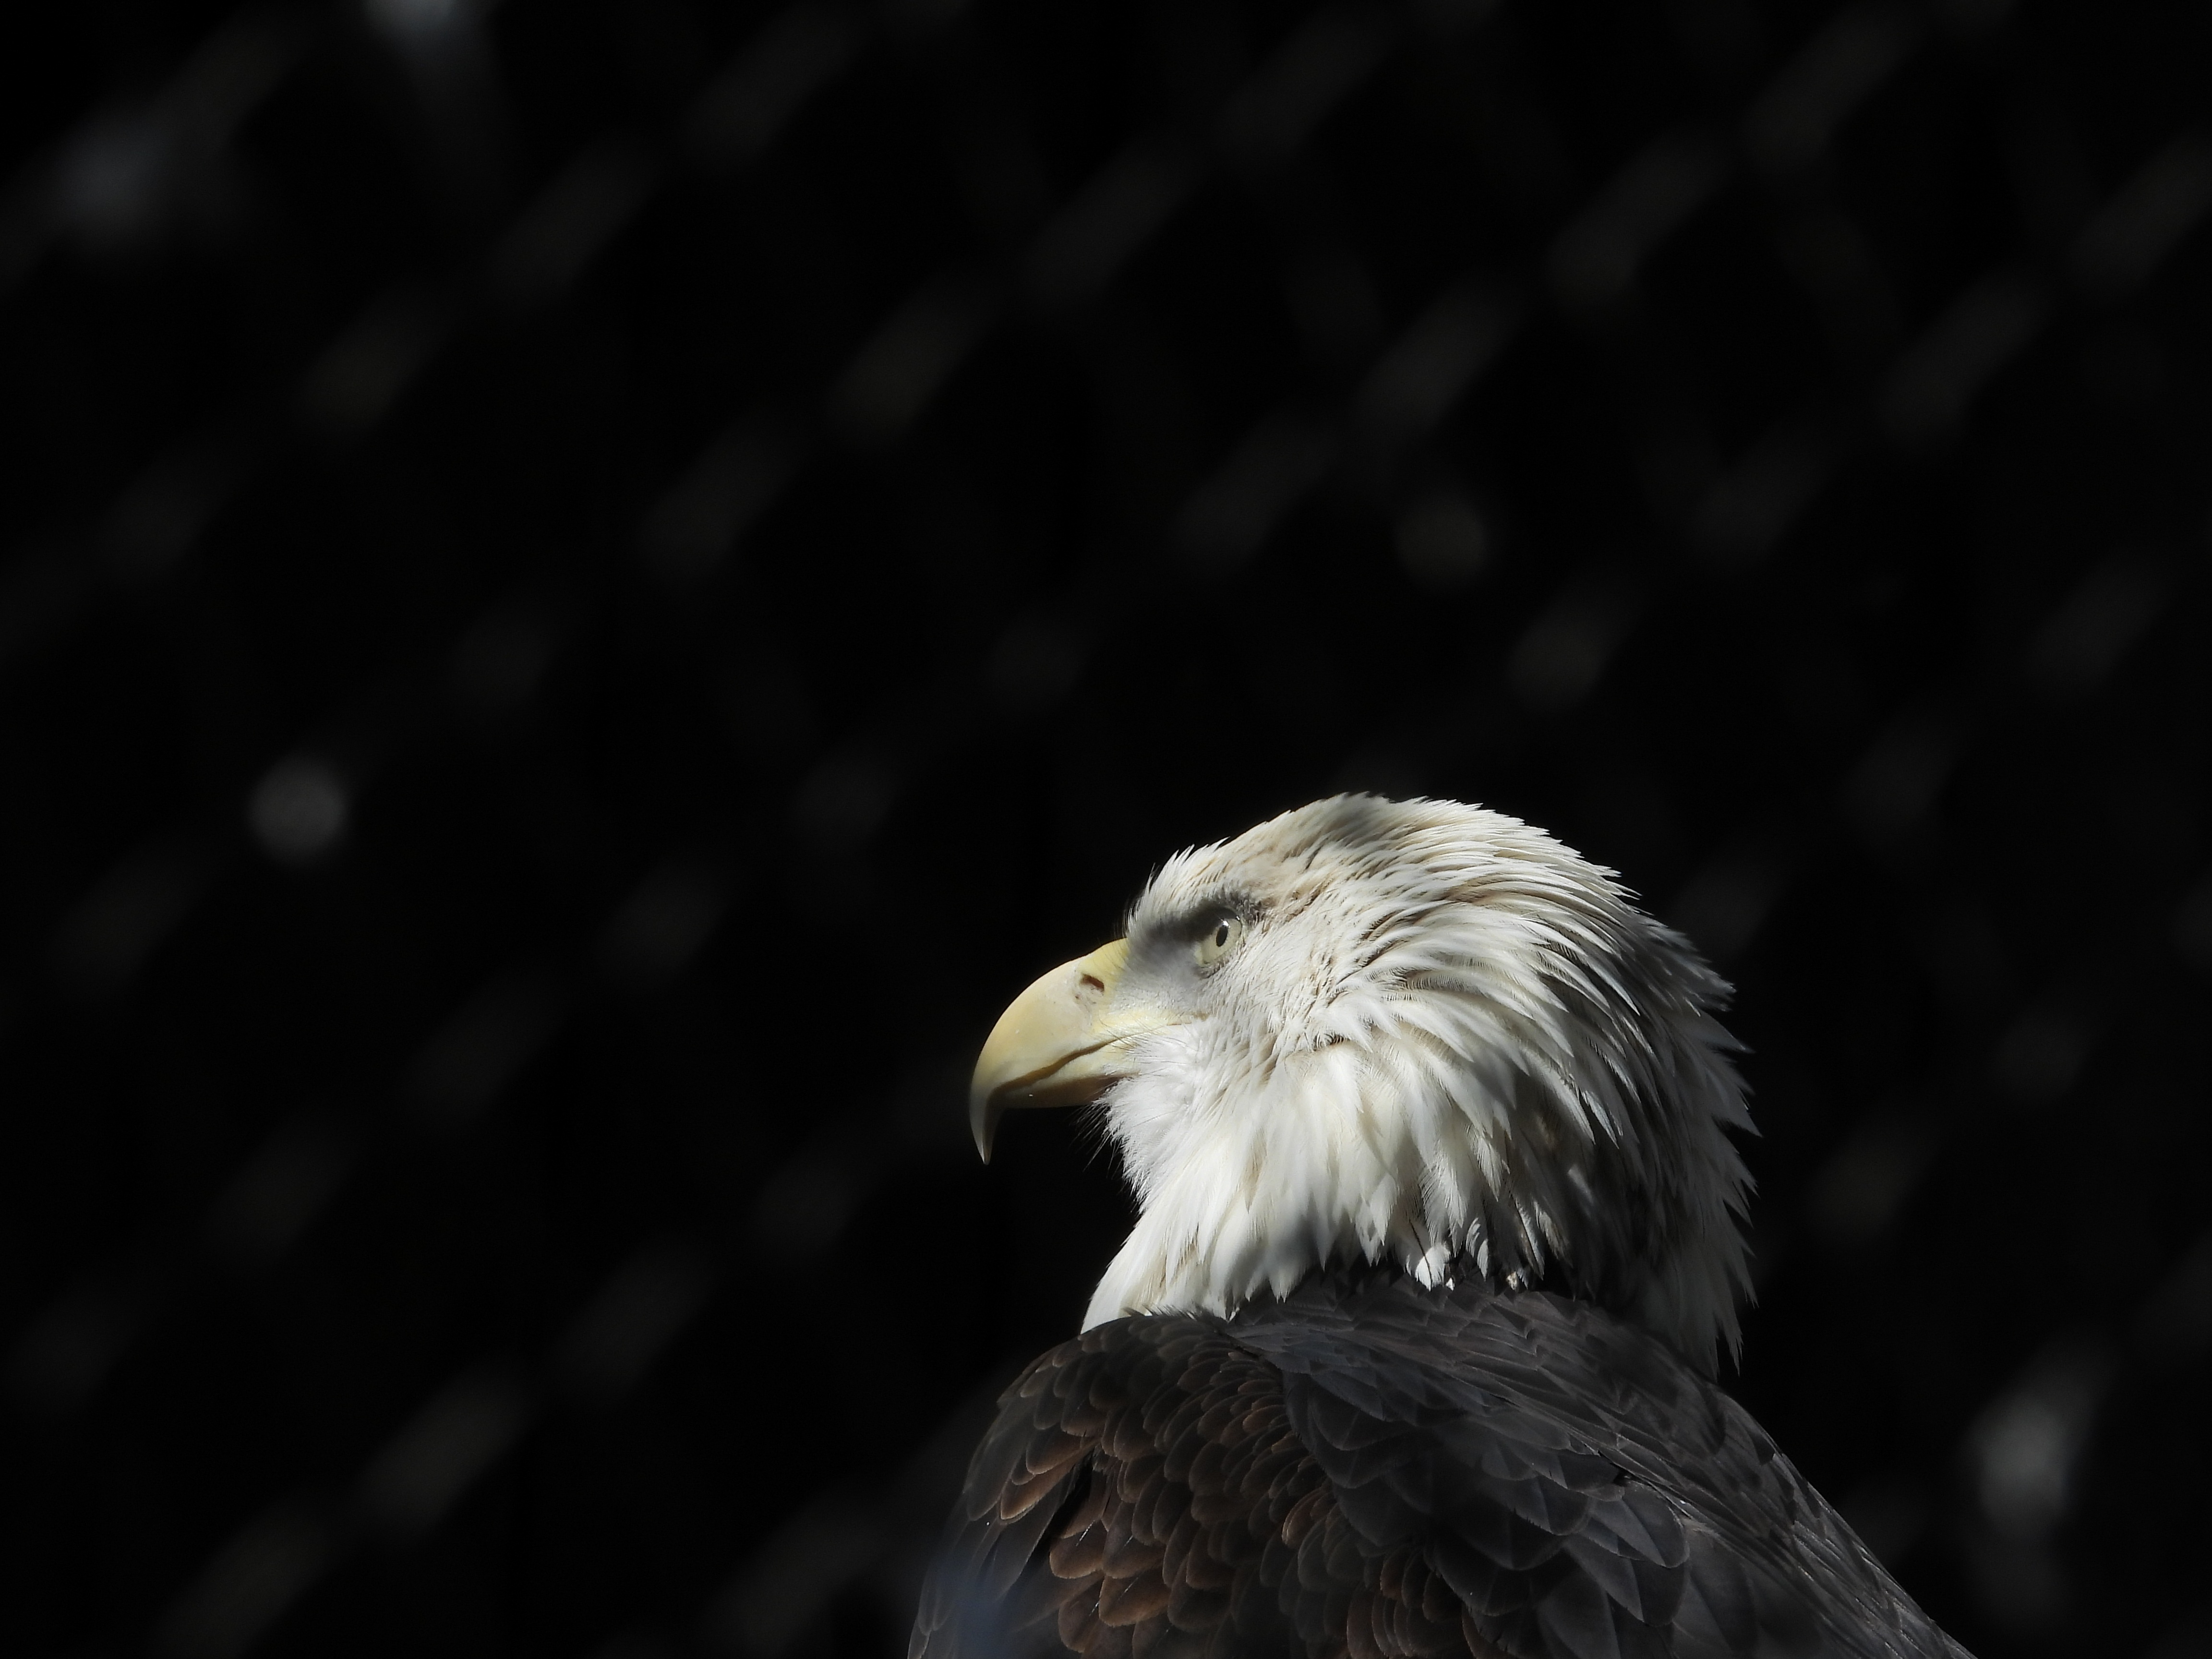 140041 download wallpaper Animals, Bald Eagle, White-Headed Eagle, Eagle, Bird, Beak, Predator, Feather screensavers and pictures for free